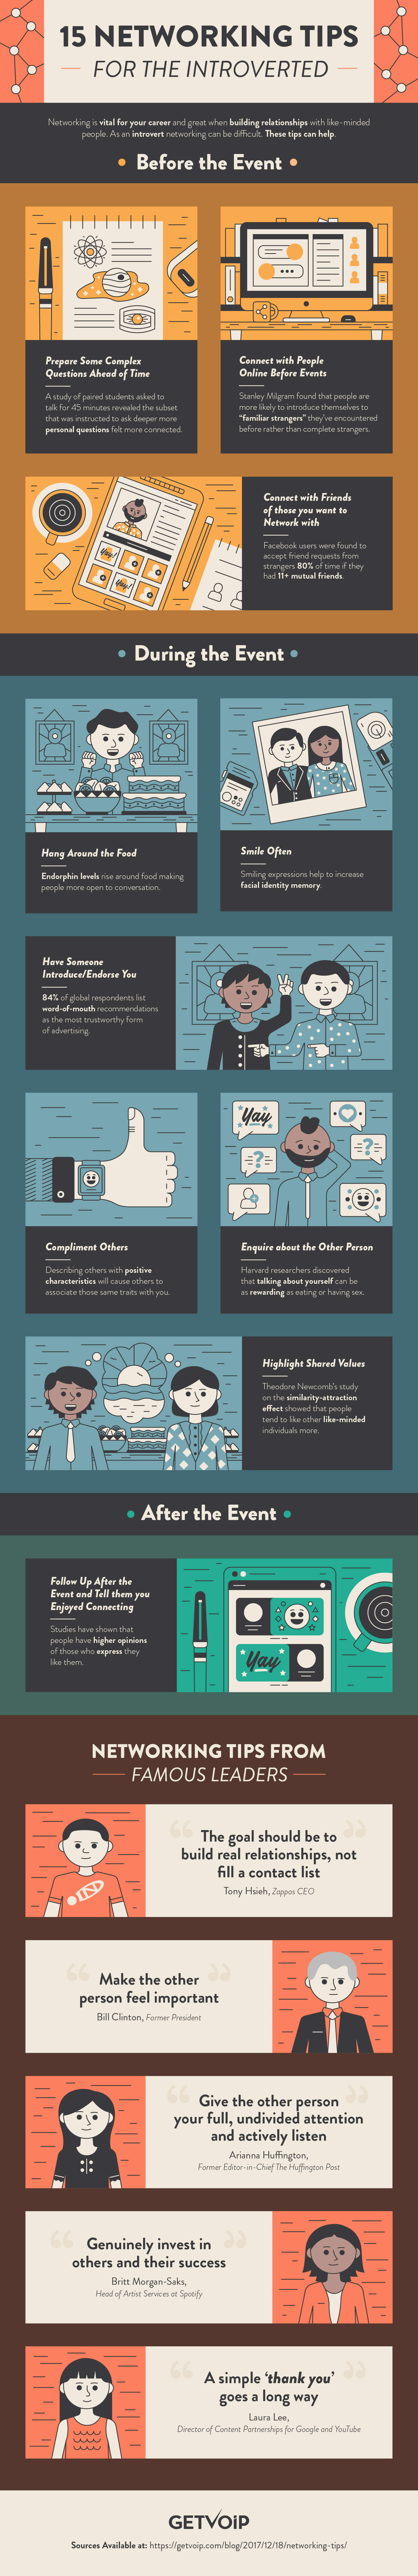 networking-tips-for-the-introverted-infographic